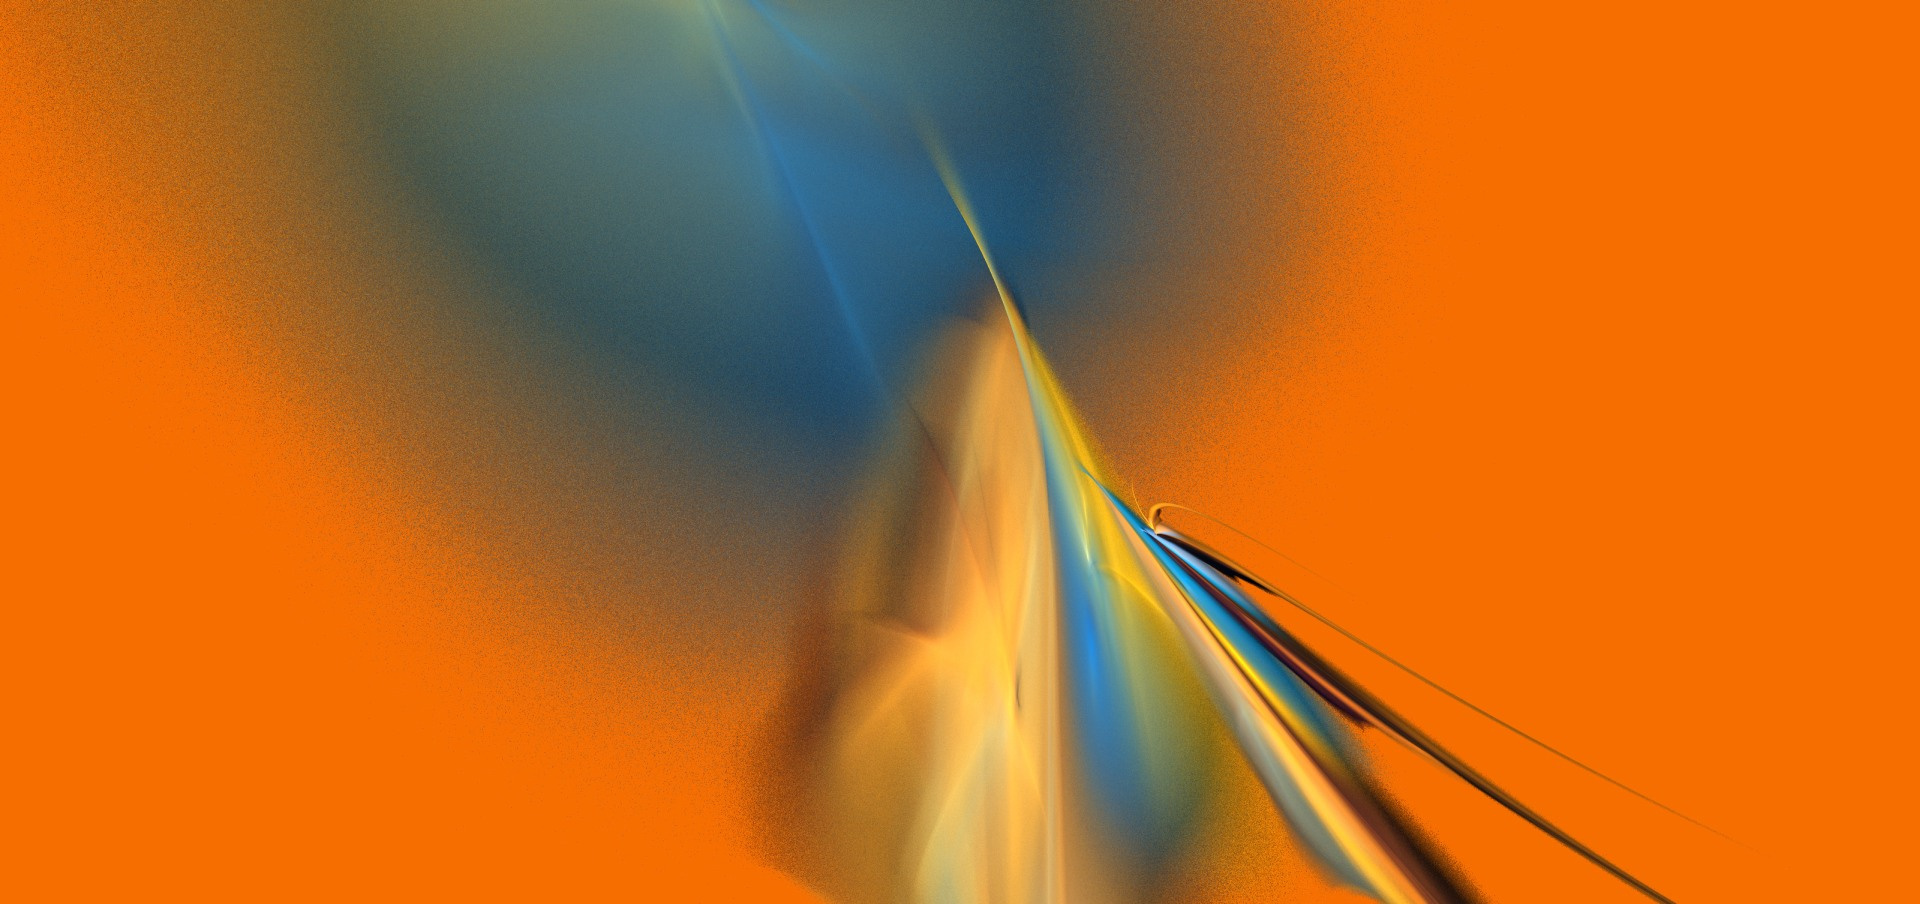 Fraktale Apophysis Agent Orange 1080p